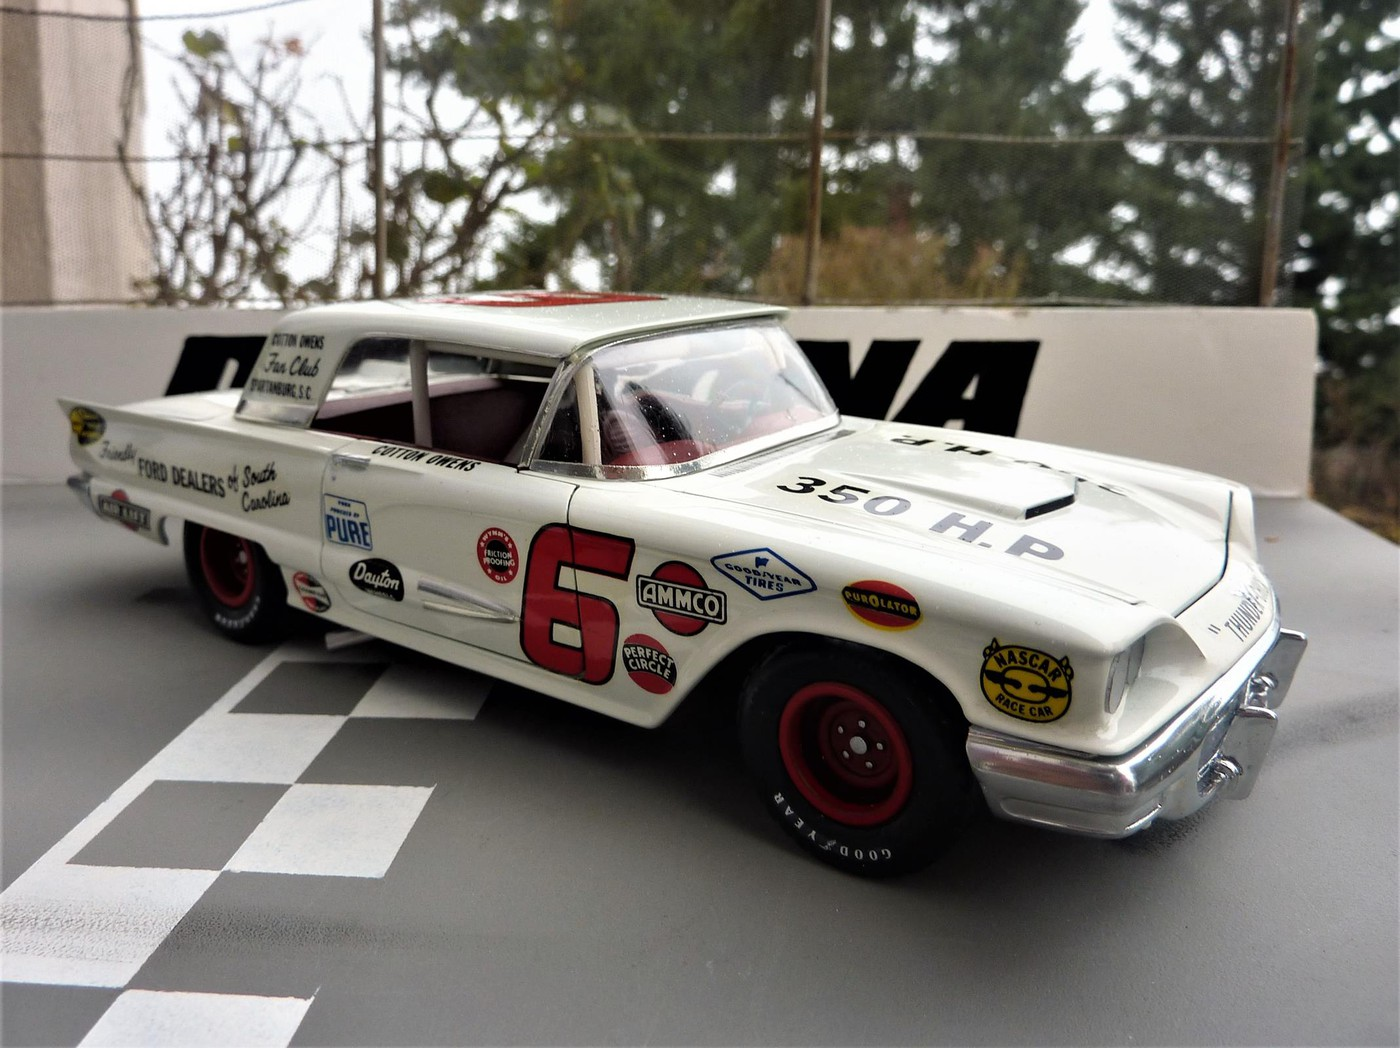 Ford Thunderbird 59 Nascar Cotton Owens terminée - Page 2 Photo2-vi